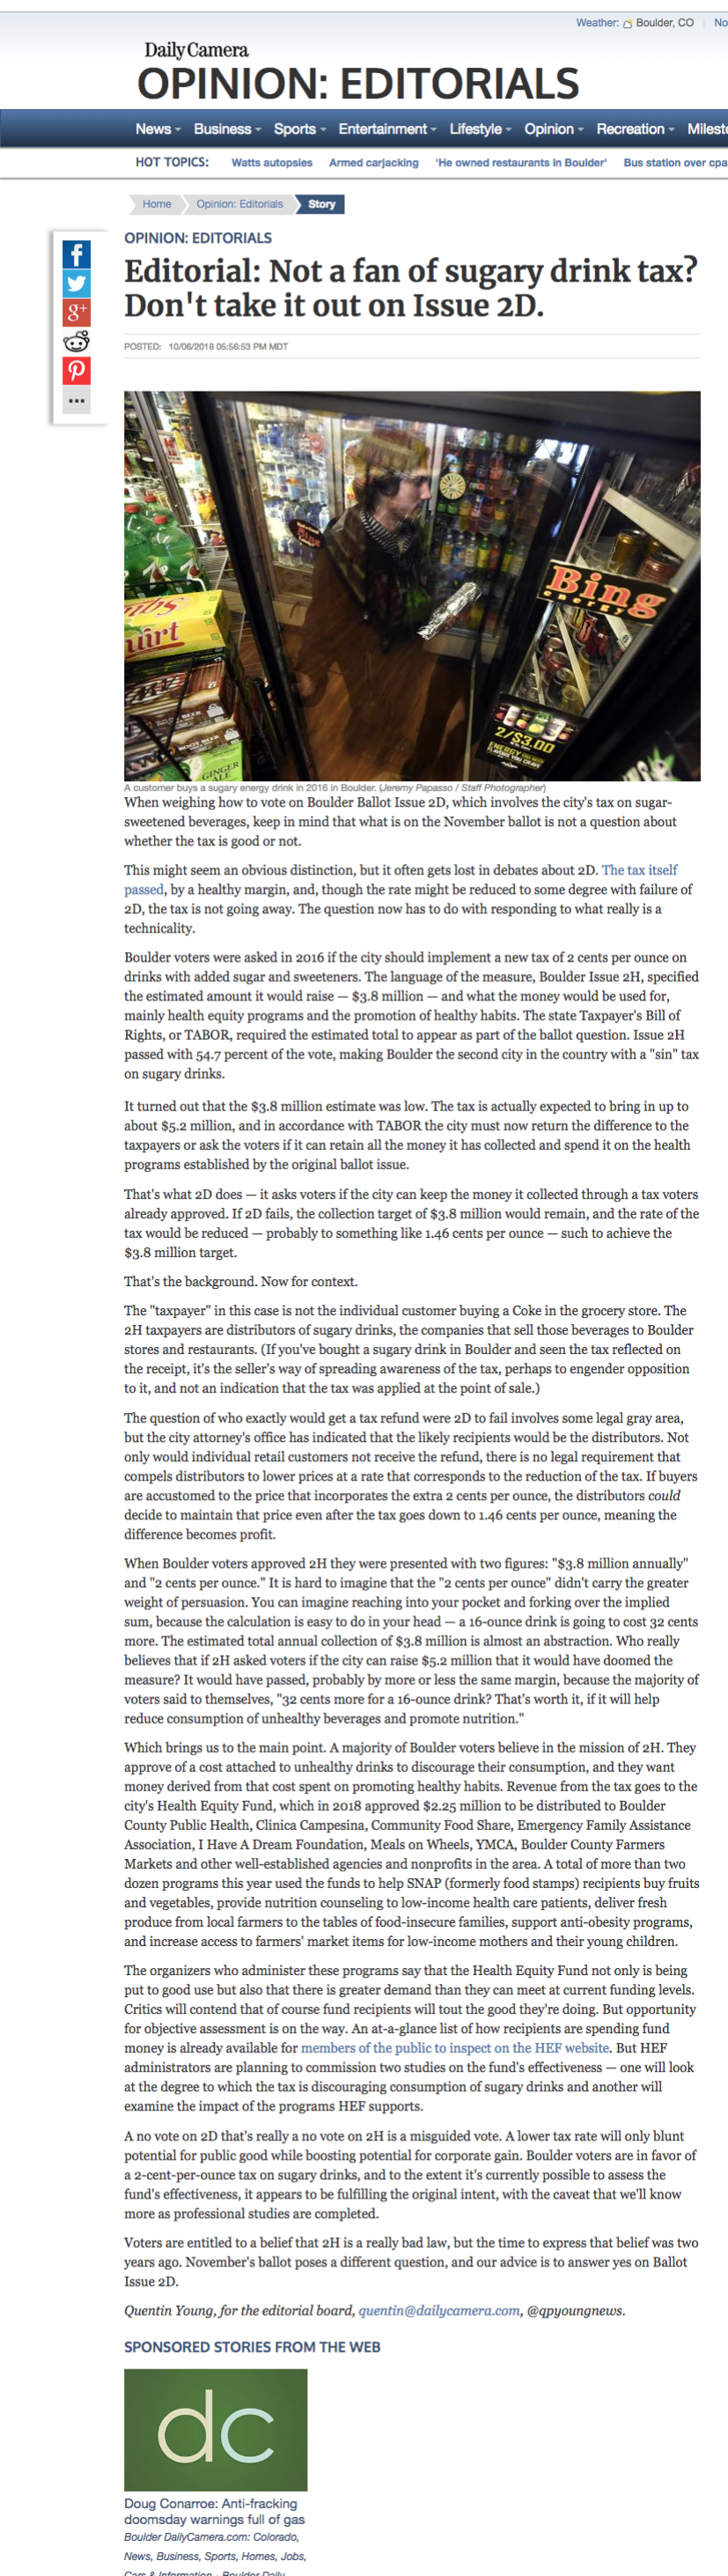 screencapture-dailycamera-editorials-ci_32187577-editorial-boulder-issue-2d-sugary-drink-tax-2018-10-12-16_30_34.png